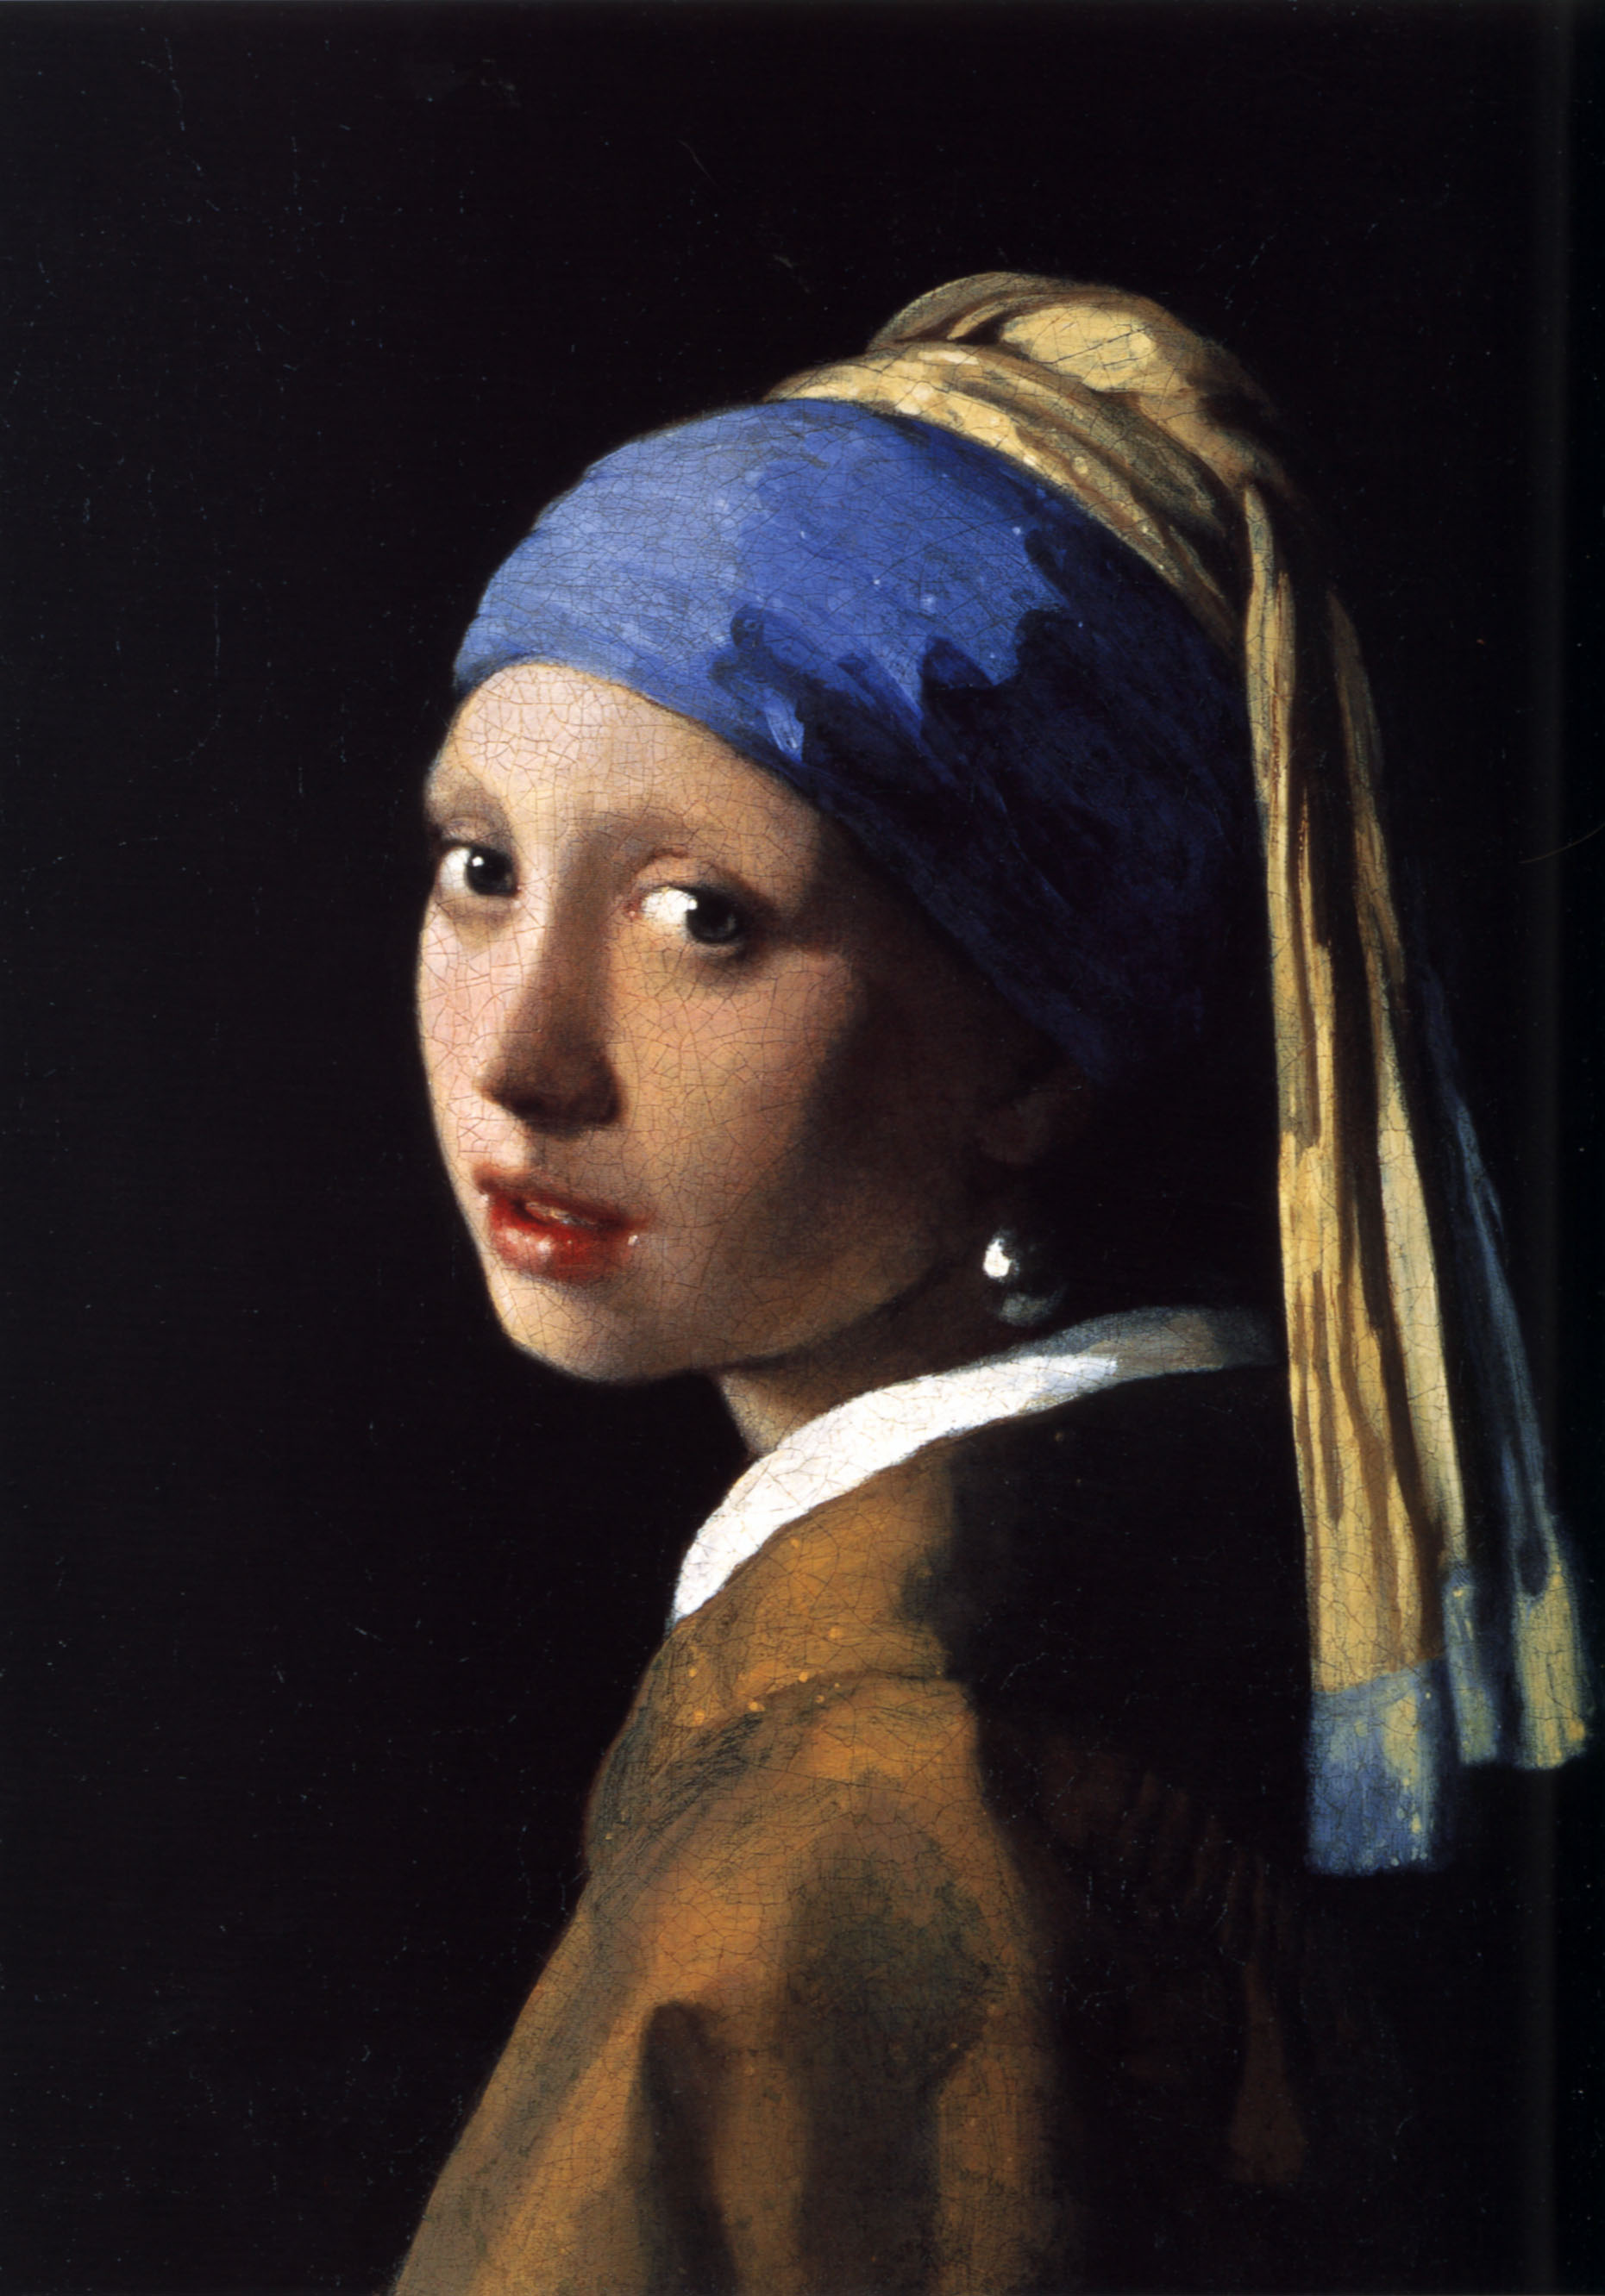 'Girl with the pearl earring' by Johannes Vermeer